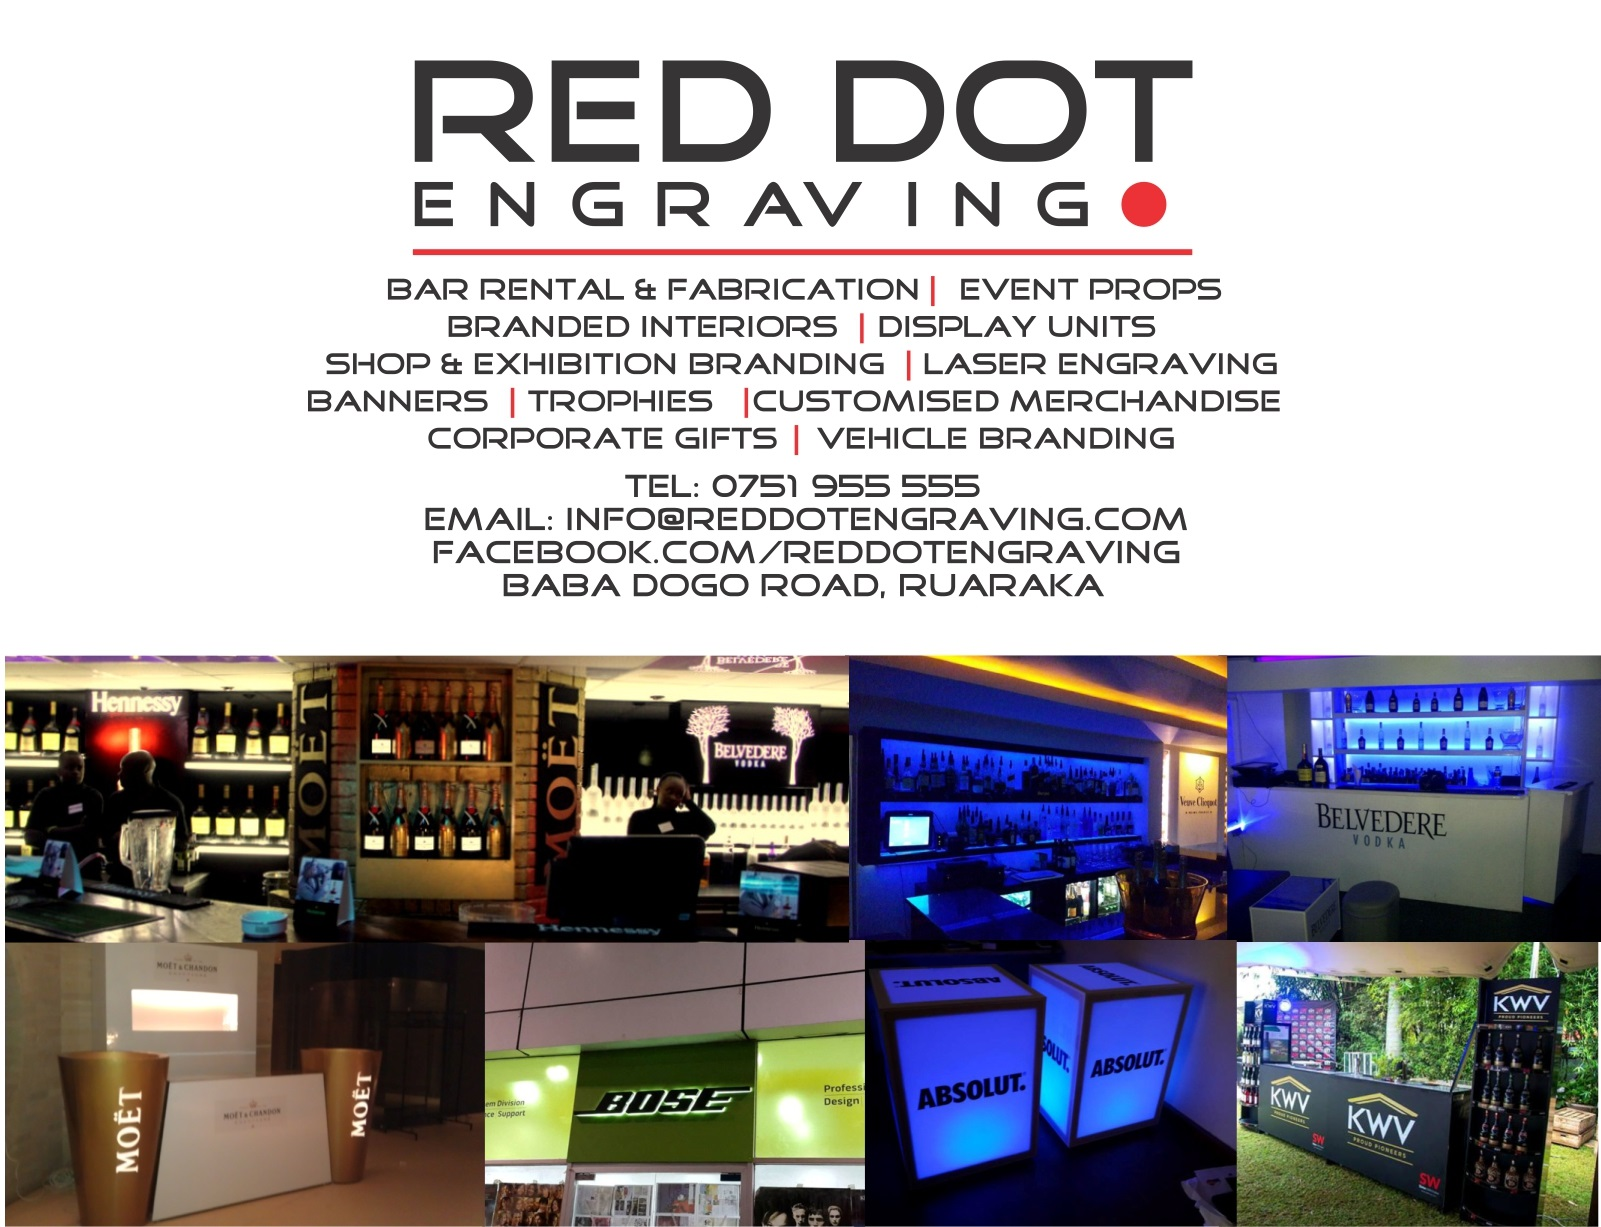 Red Dot Engraving :: Laser Engraving & Cutting, Corporate & Personalised Gifts